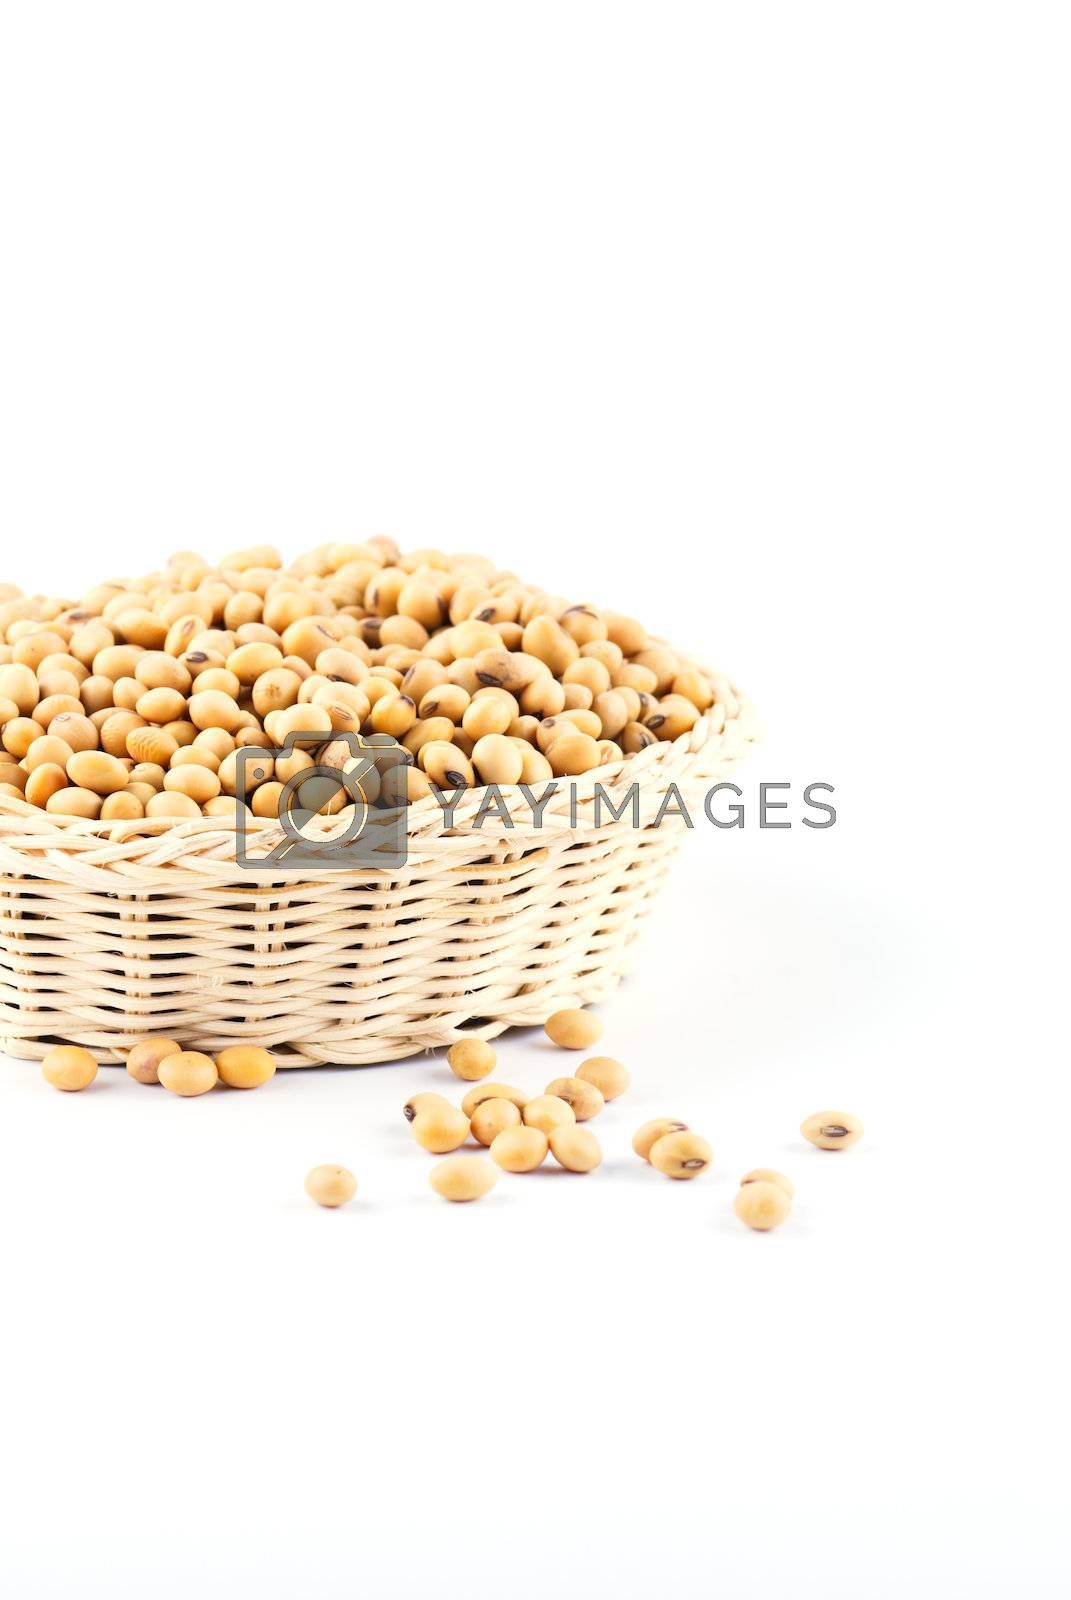 Royalty free image of soybean by teen00000